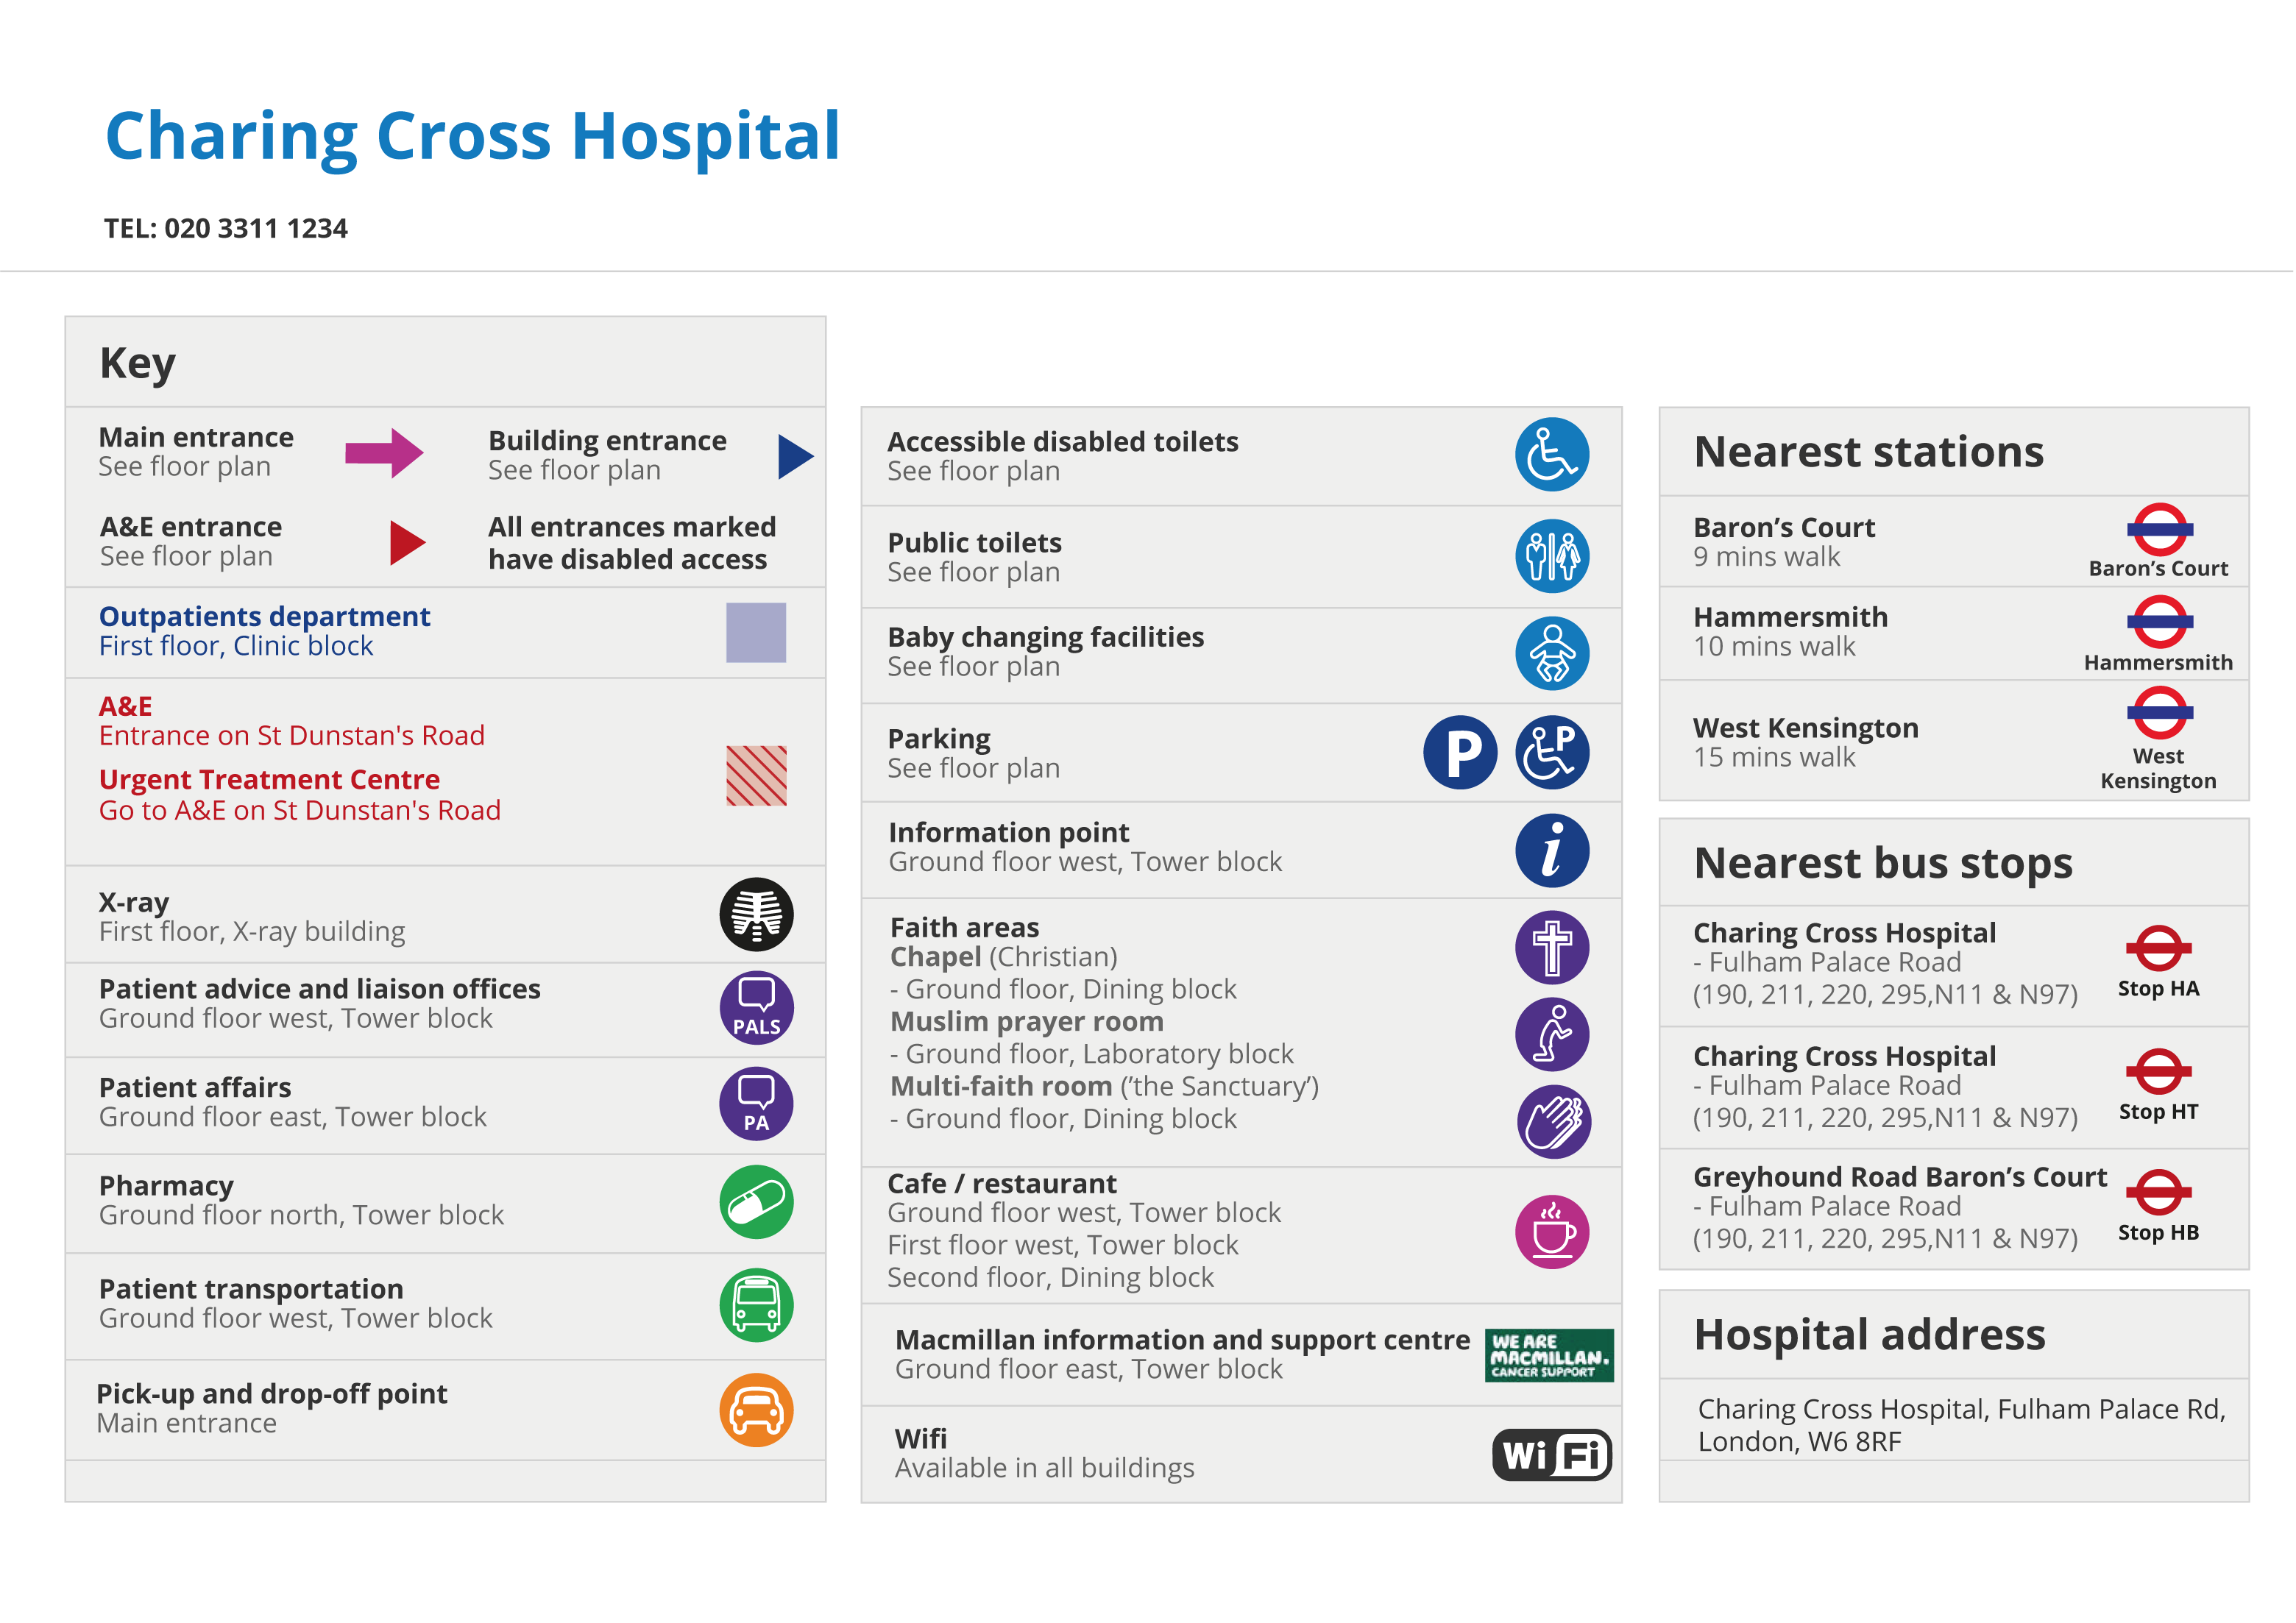 Charing Cross Hospital key map